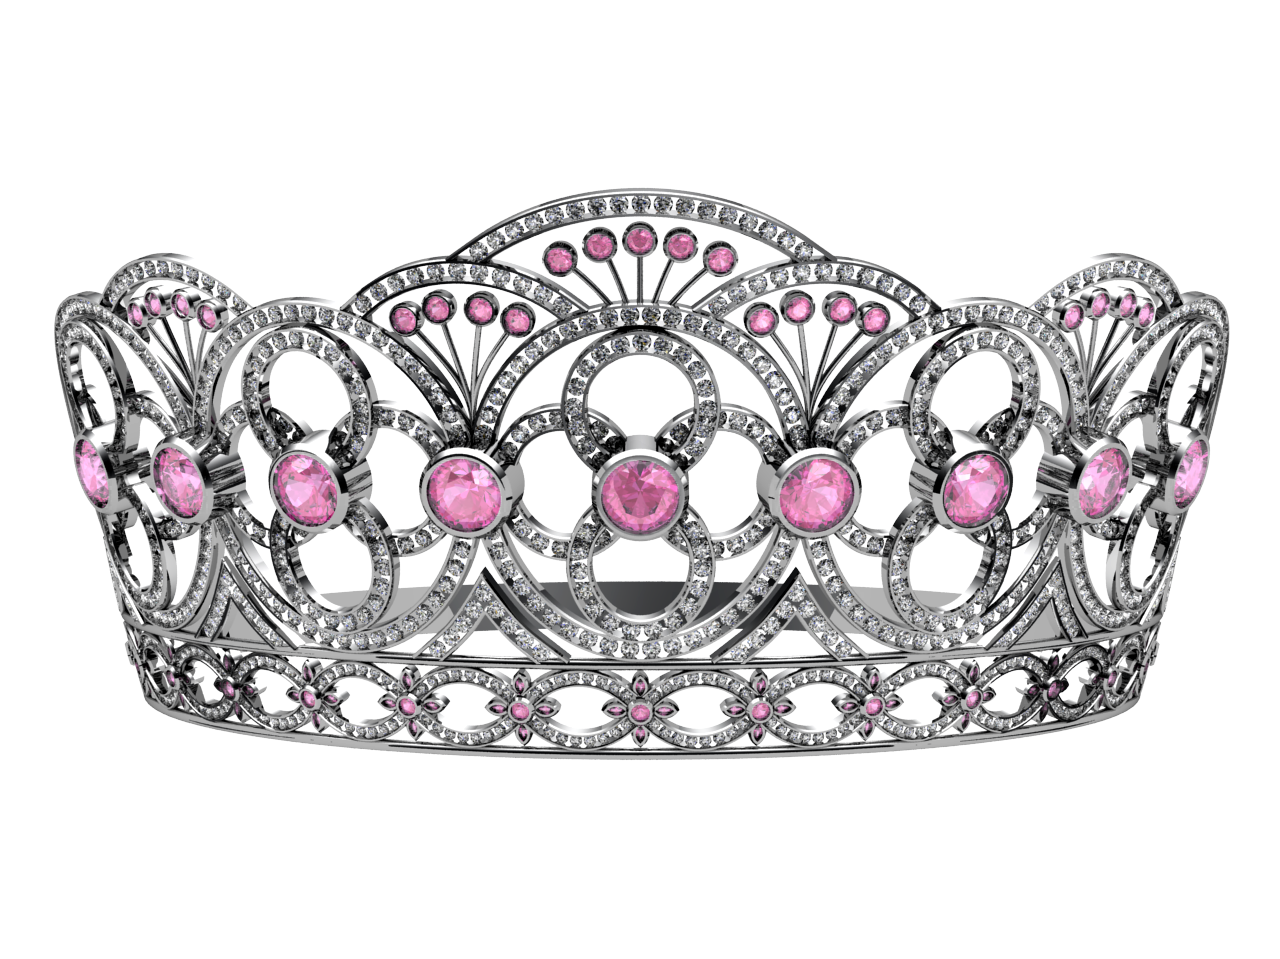 Pink princess crown clipart png image freeuse download Crown Transparent PNG Pictures - Free Icons and PNG Backgrounds image freeuse download